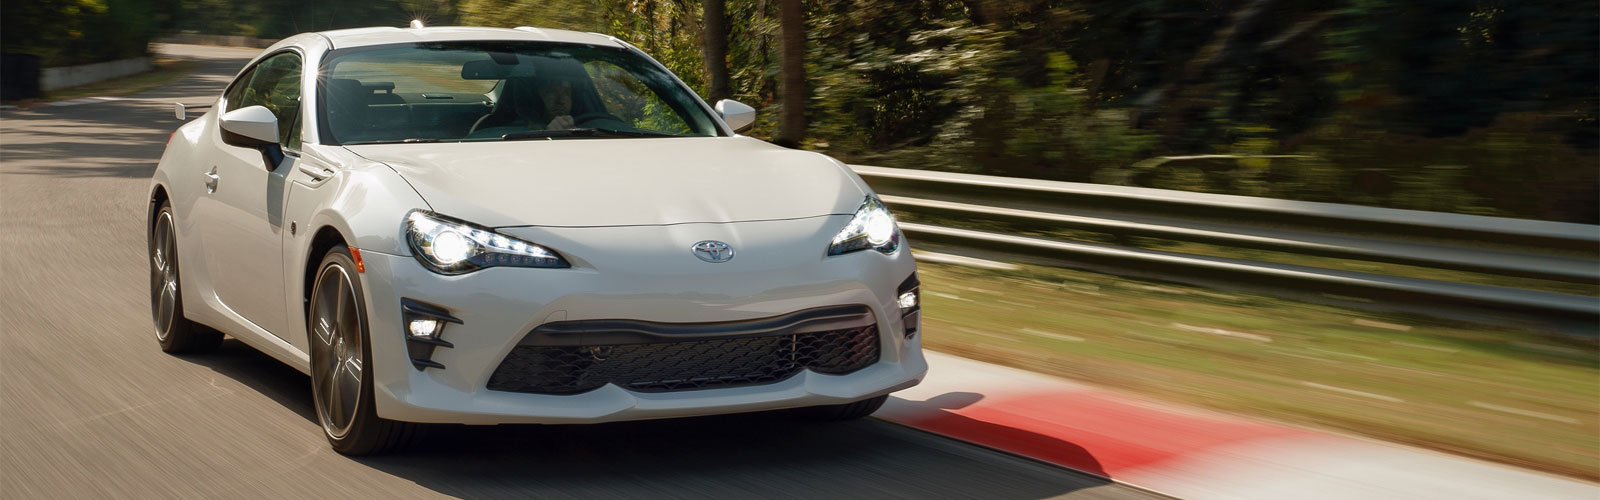 2020 Toyota 86 Sports Cars For Sale In Grenada, Mississippi